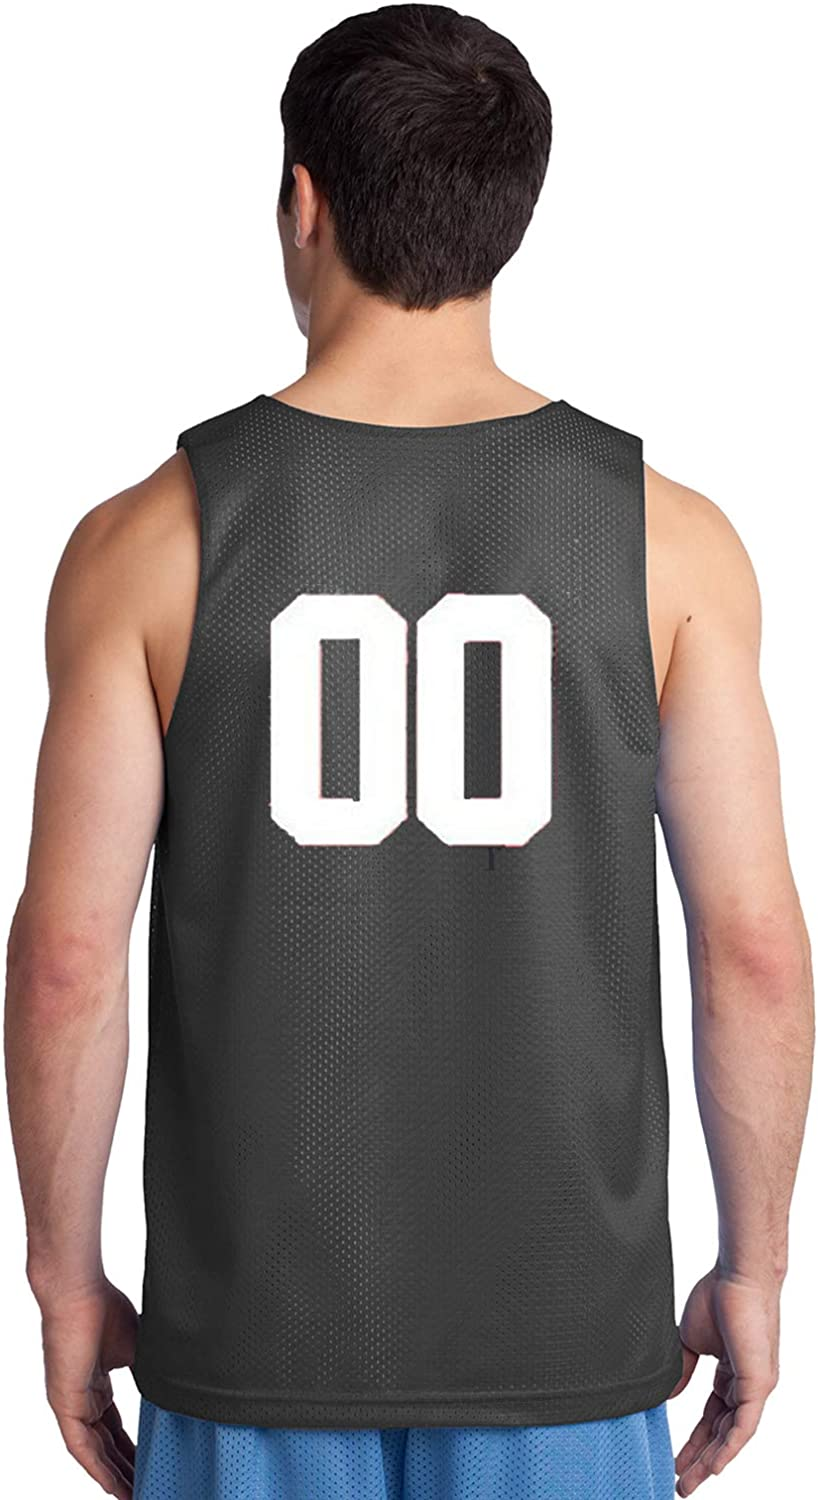 Custom Basketball Reversible Jersey Numbers Only On Back of Both Sides